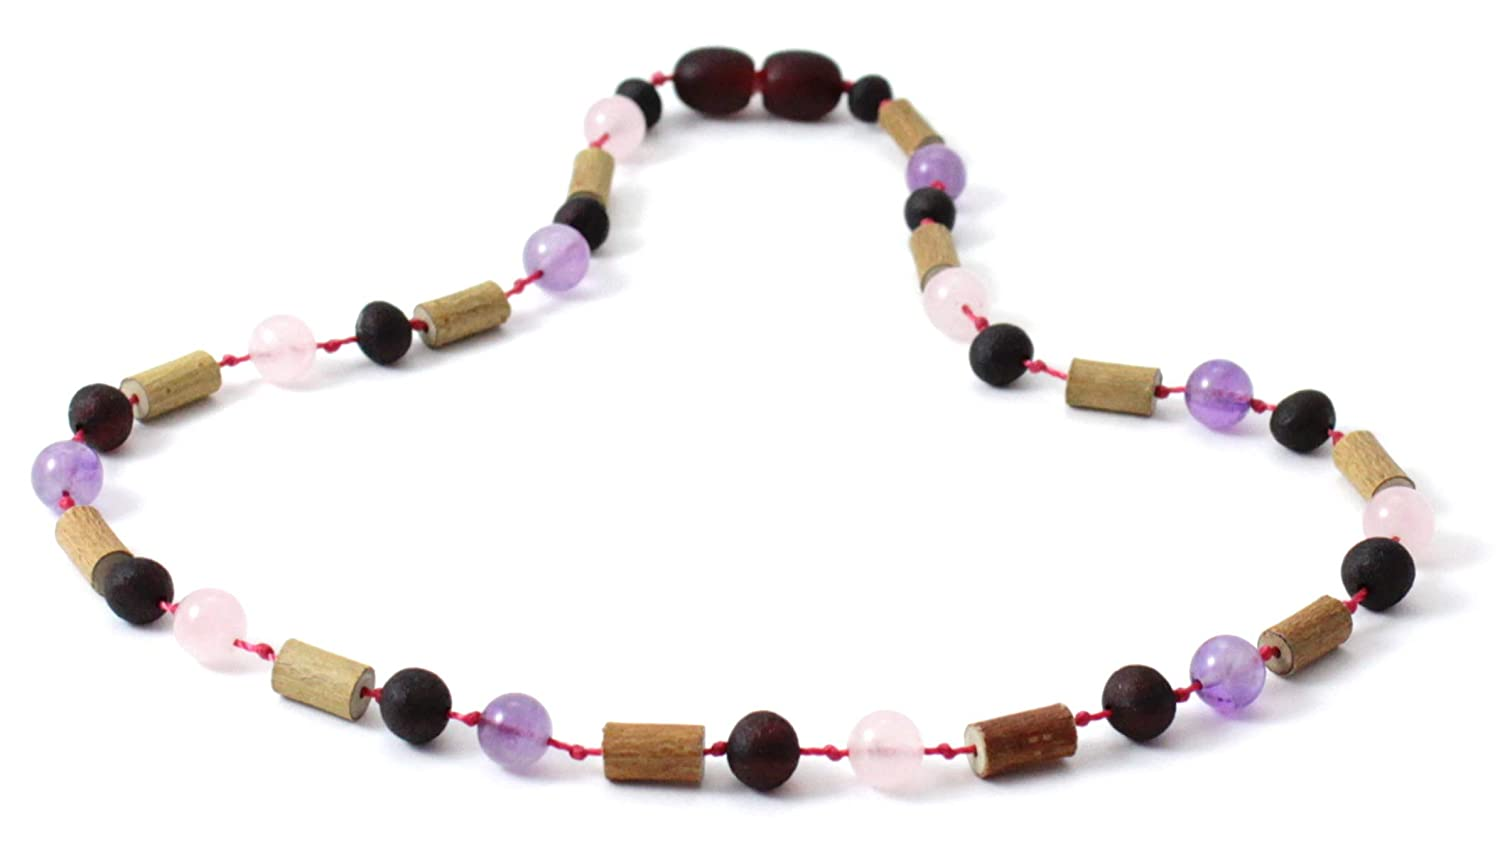 12.5 inches - BoutiqueAmber Baltic Amber Teething Necklace Made with Hazelwood and Amethyst 32 cm Green//Amethyst//Hazelwood, 12.5 inches